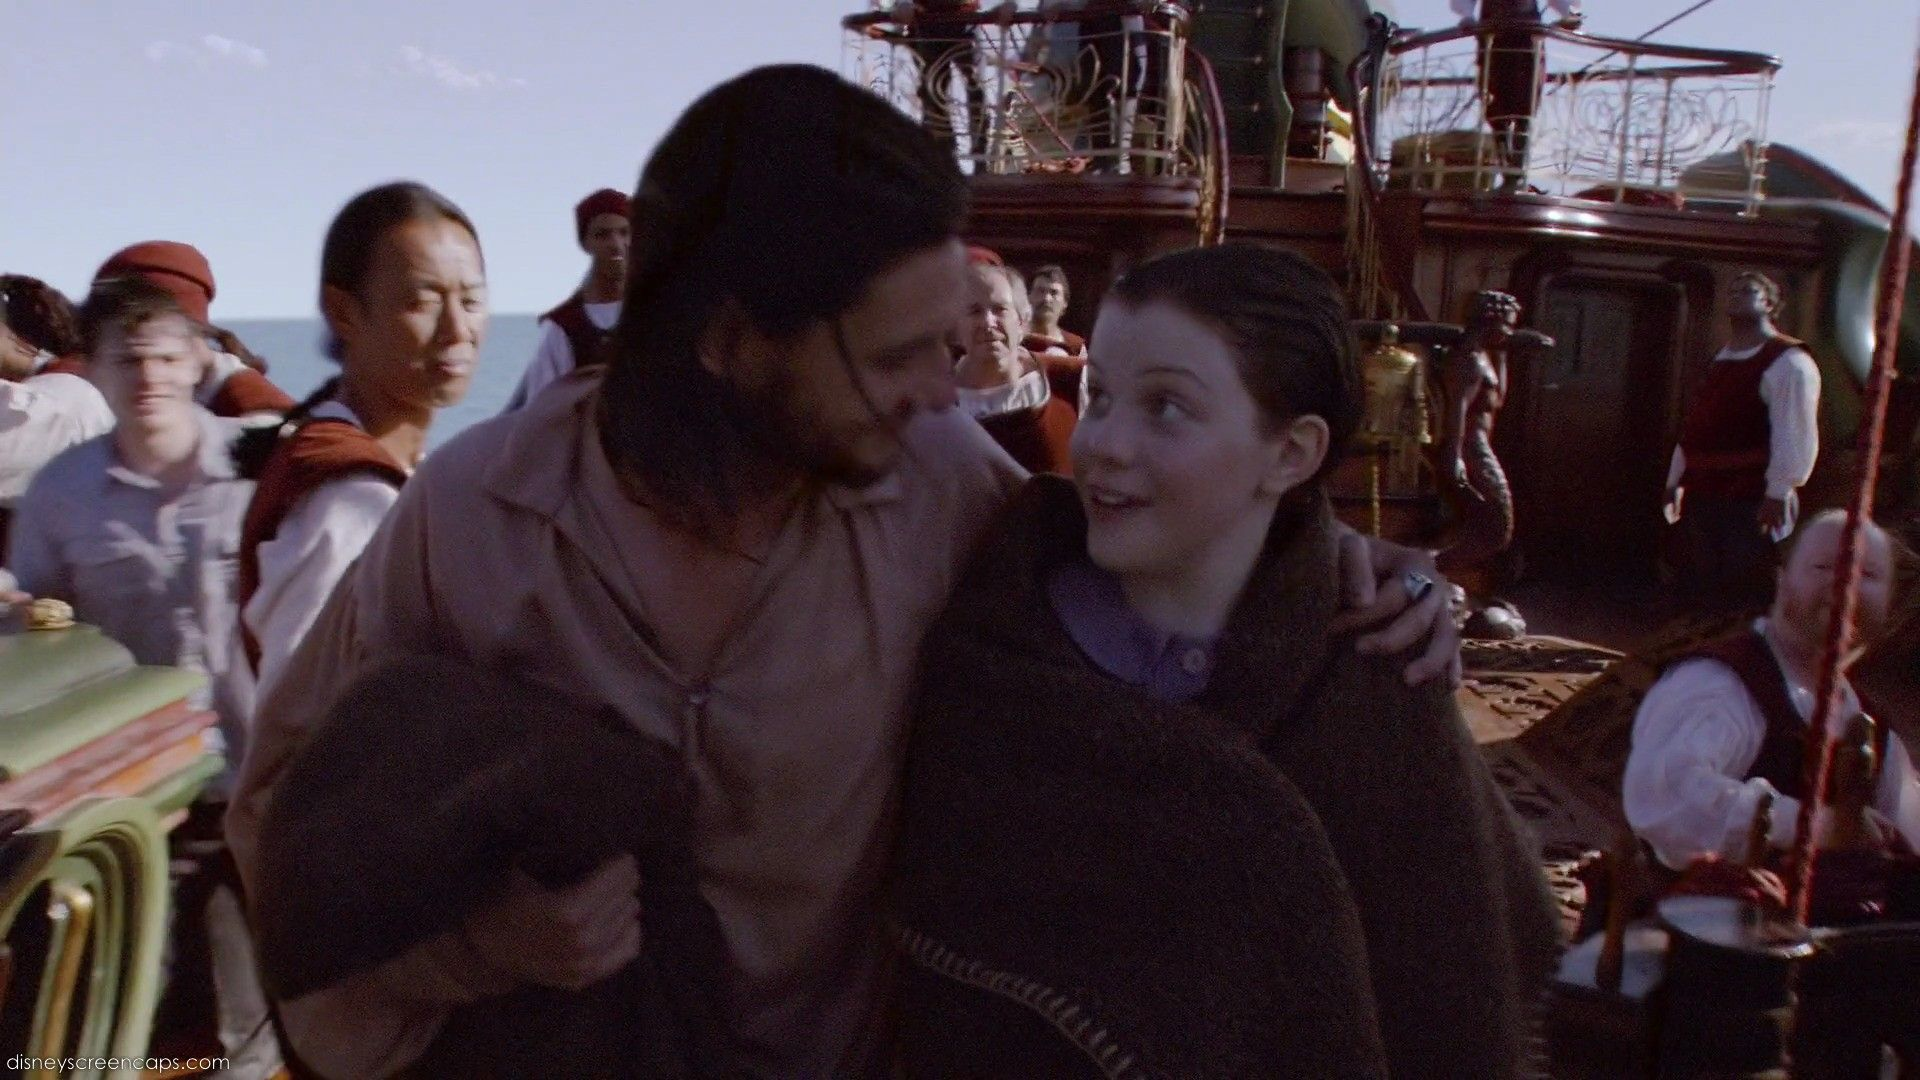 Voyage Of The Dawn Treader Chronicles Of Narnia Narnia Cast Narnia